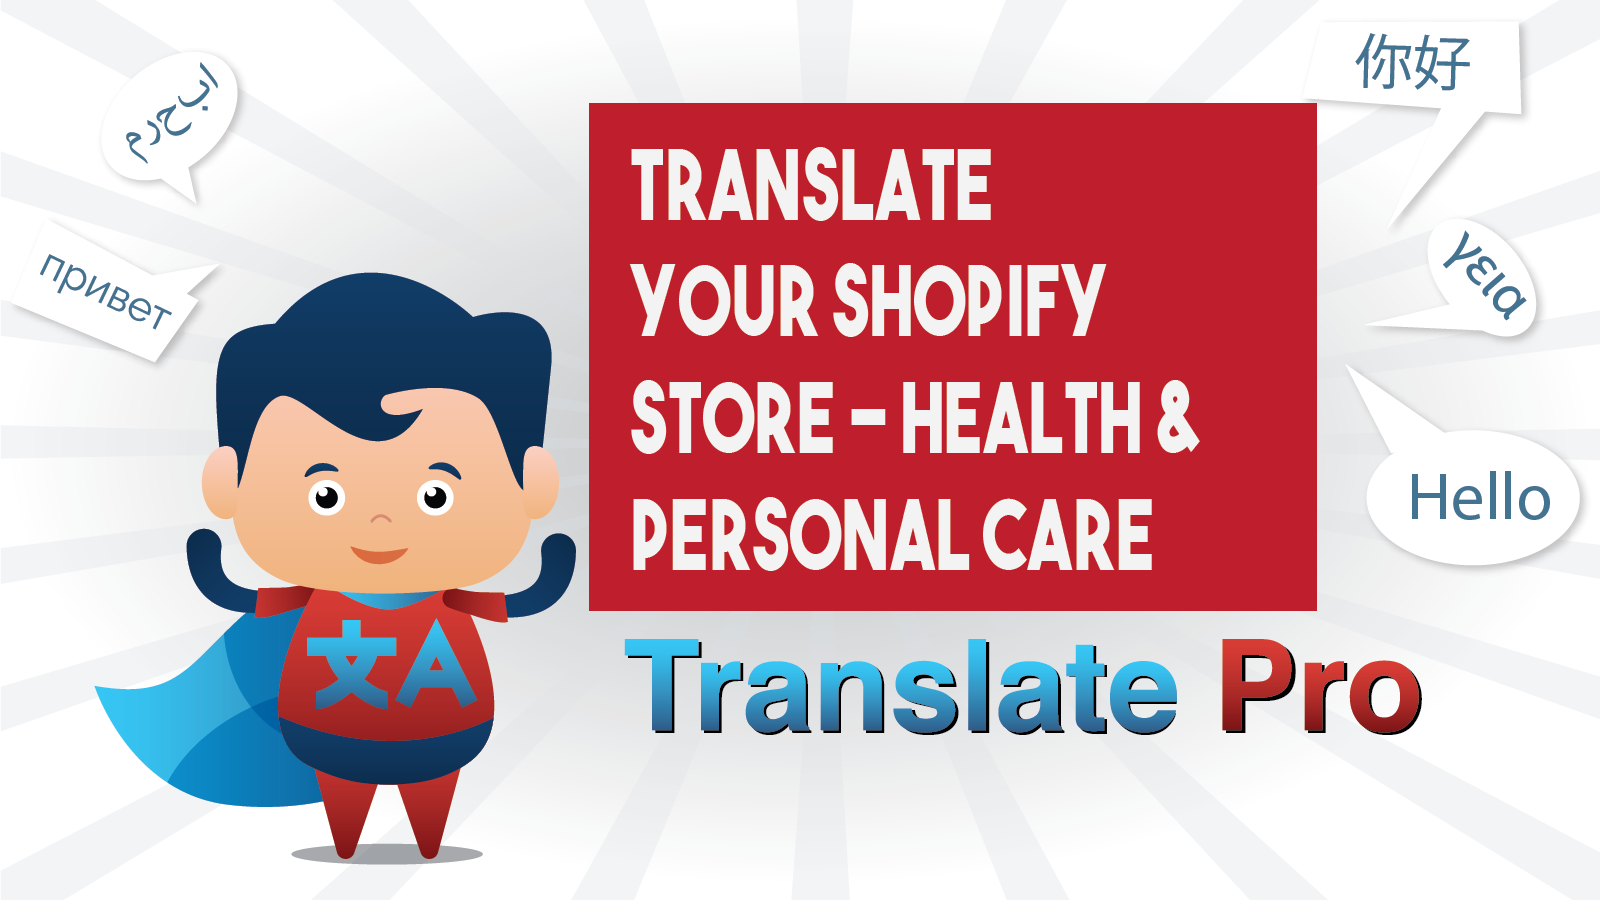 How To Translate Your Shopify Headphone And Speakers Store